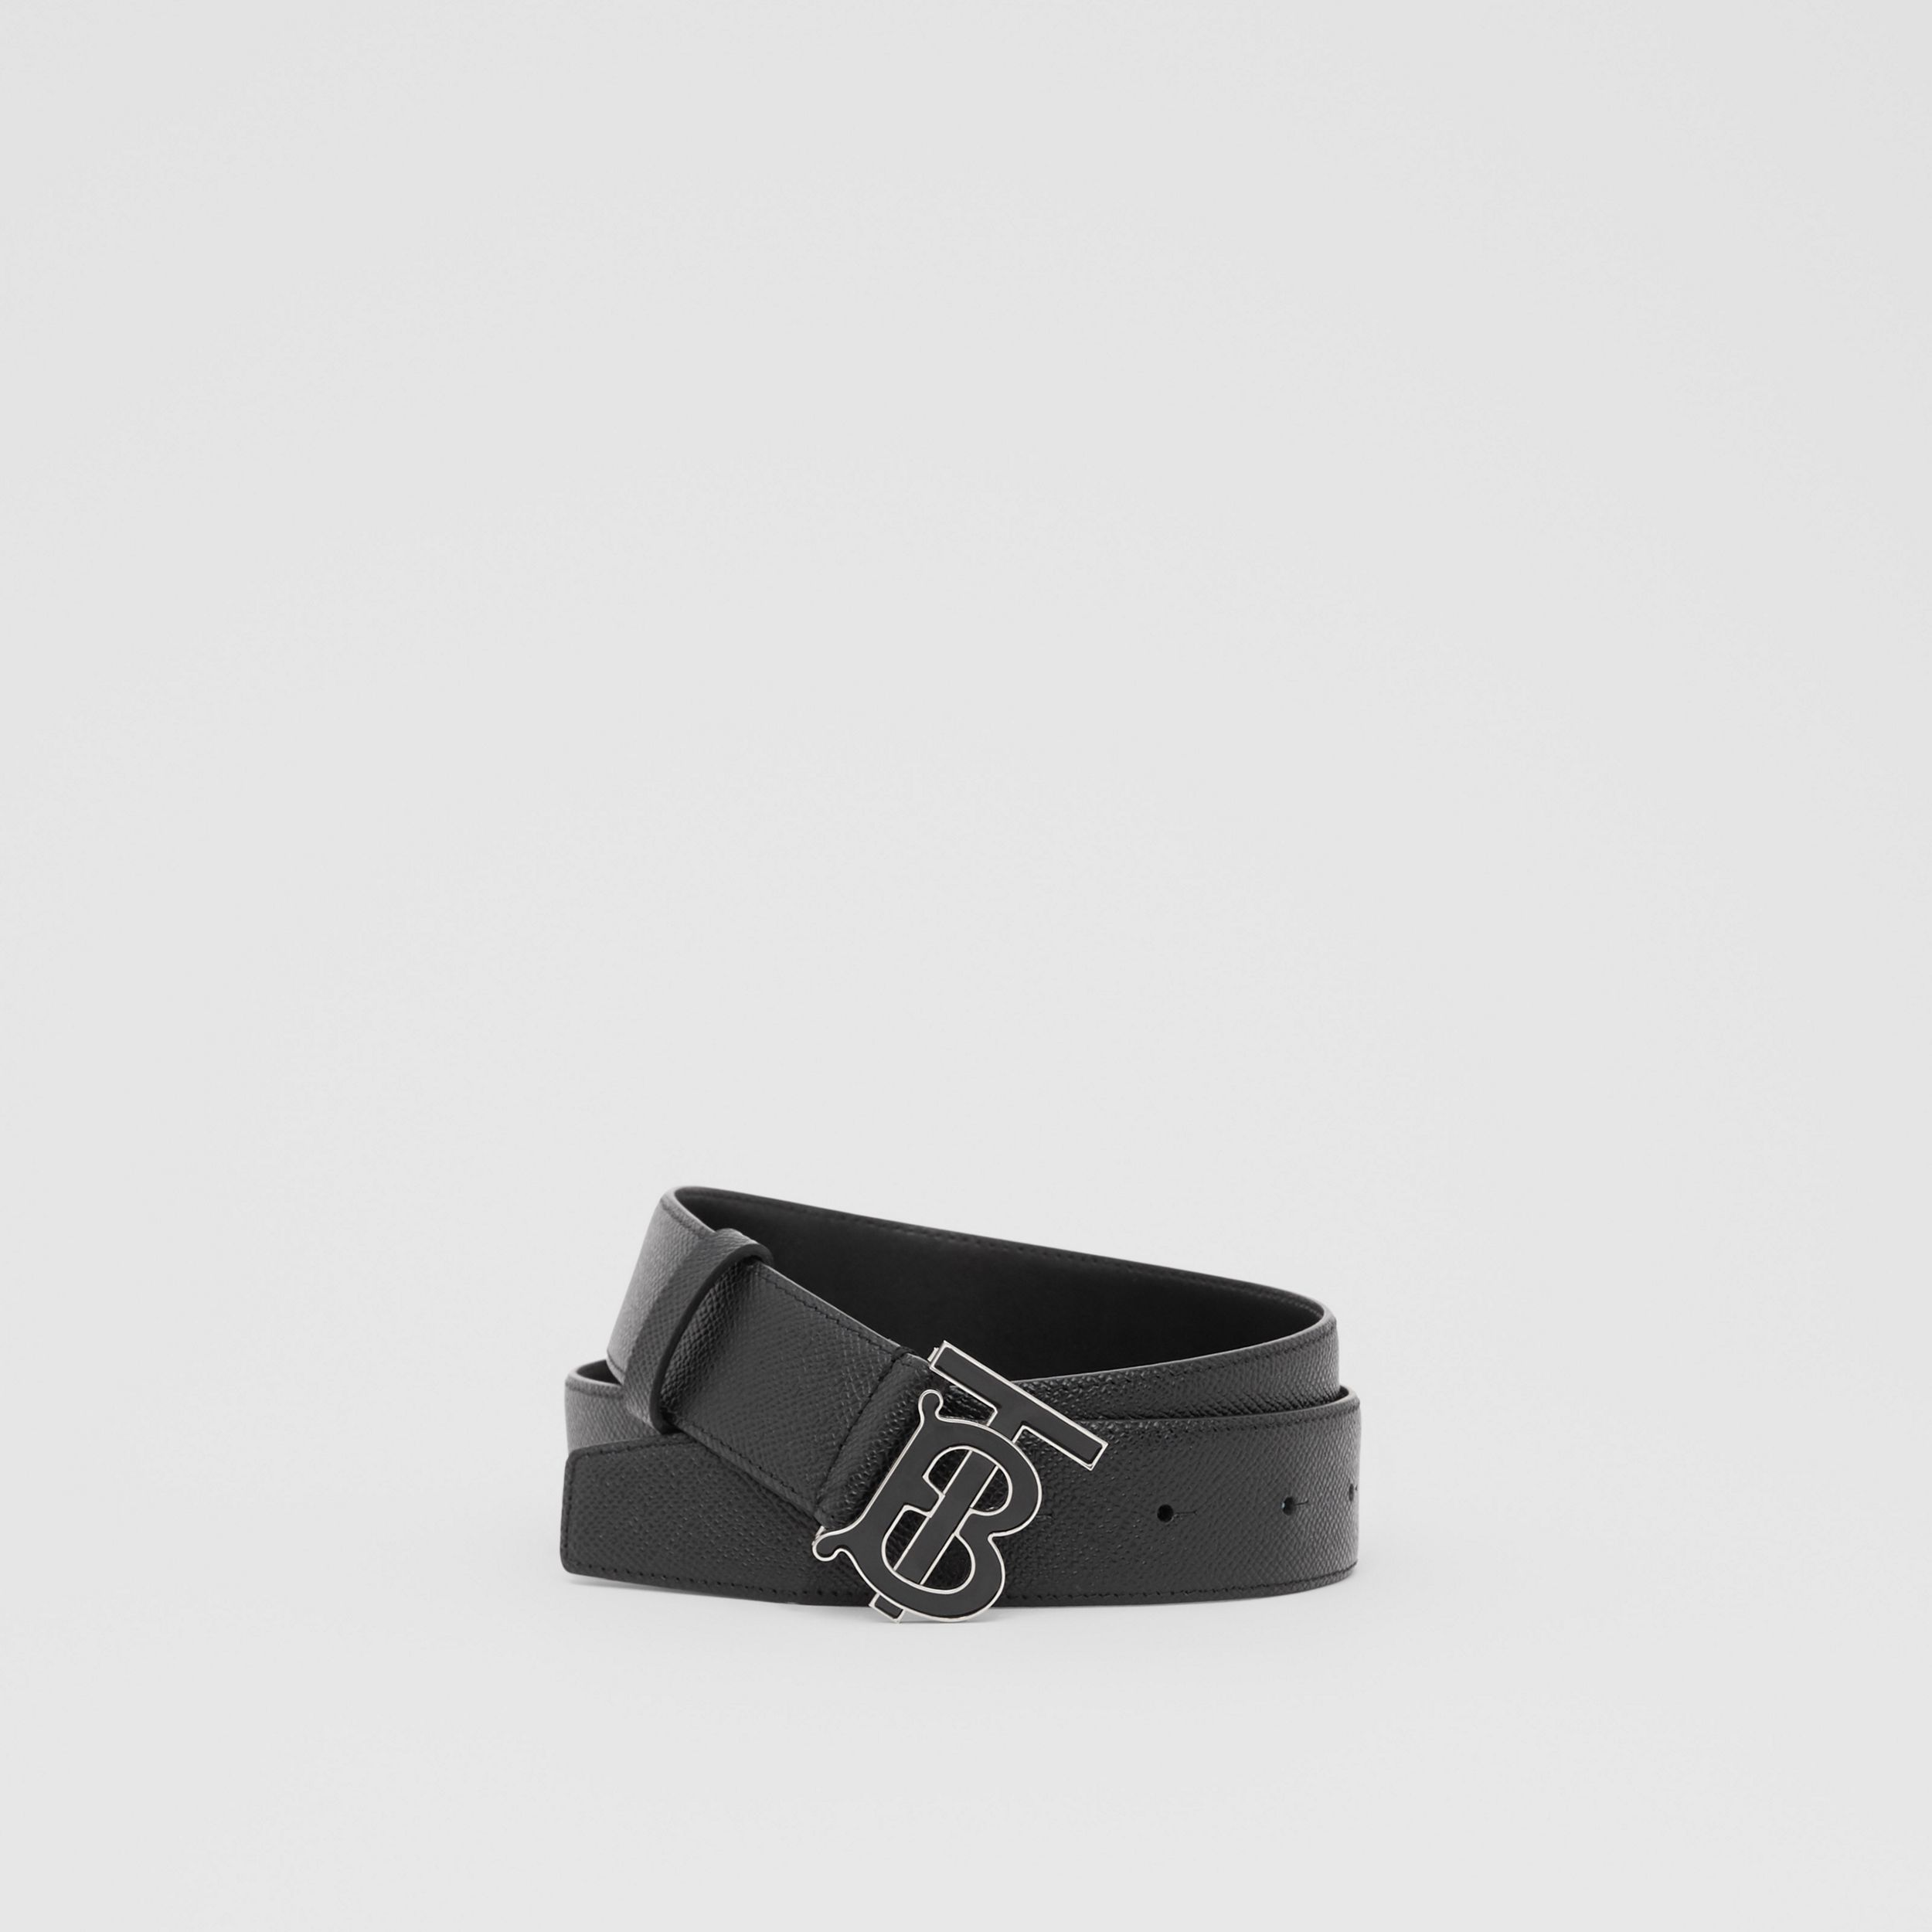 Monogram Motif Grainy Leather Belt in Black - Men | Burberry Hong Kong S.A.R. - 1